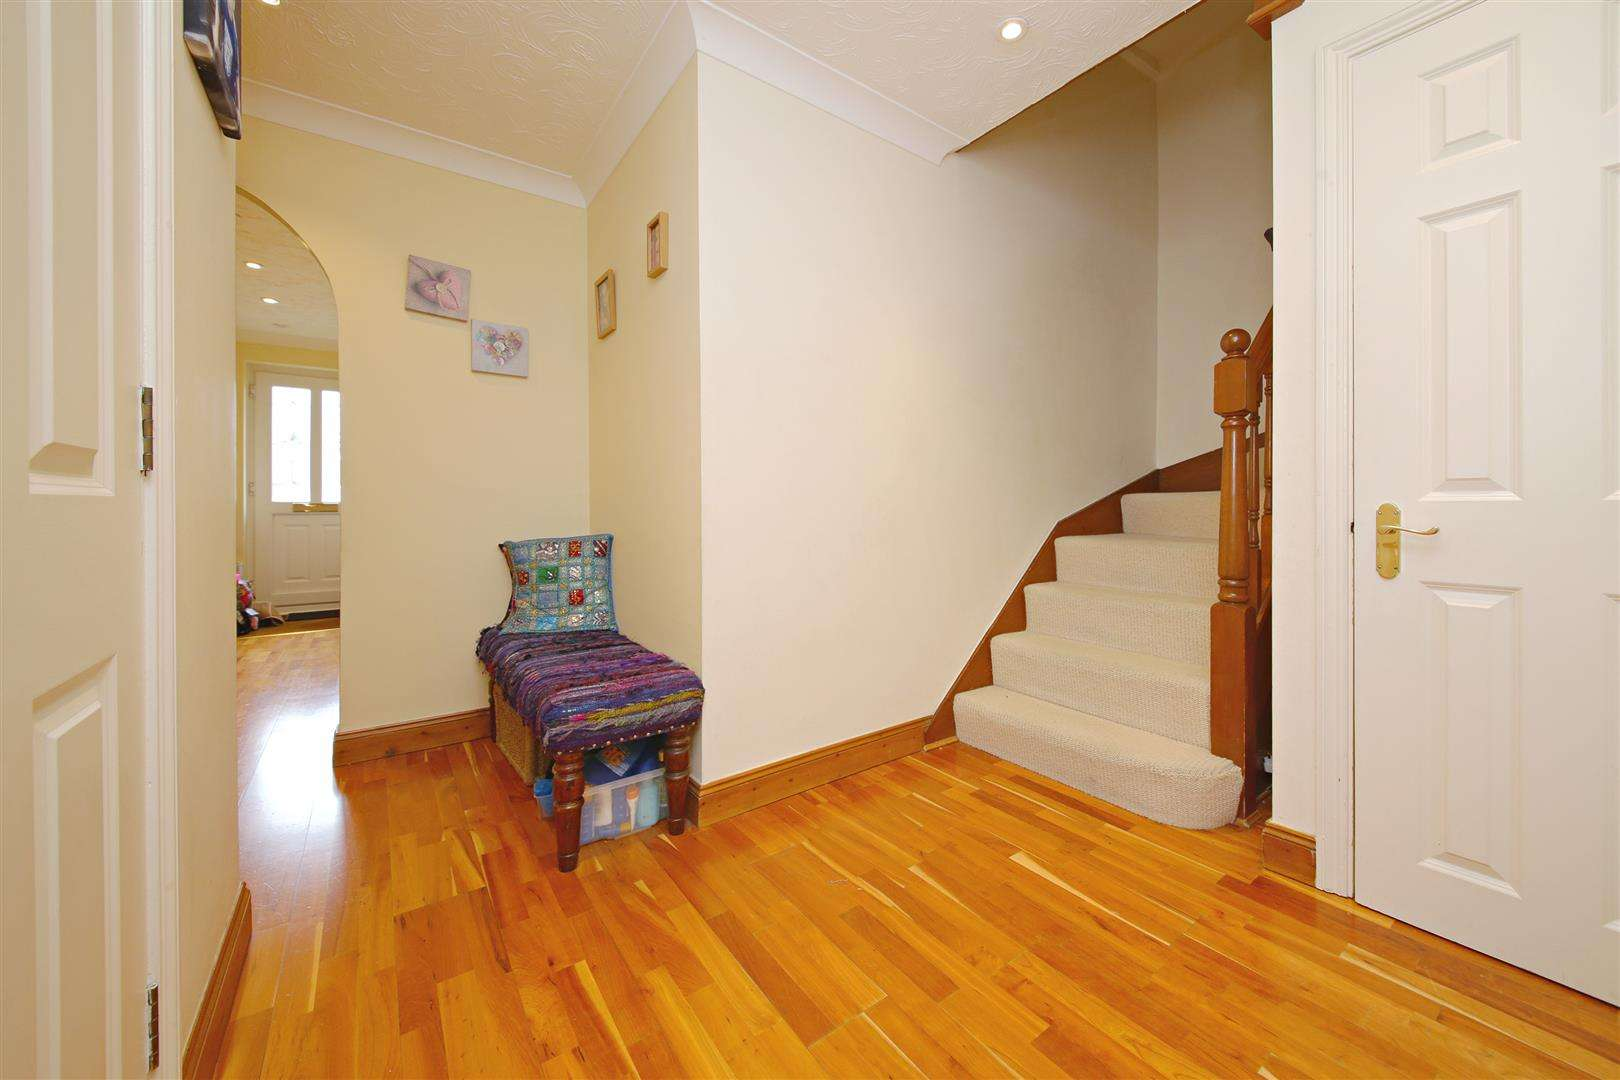 4 bed to rent in Shenley - (Property Image 3)